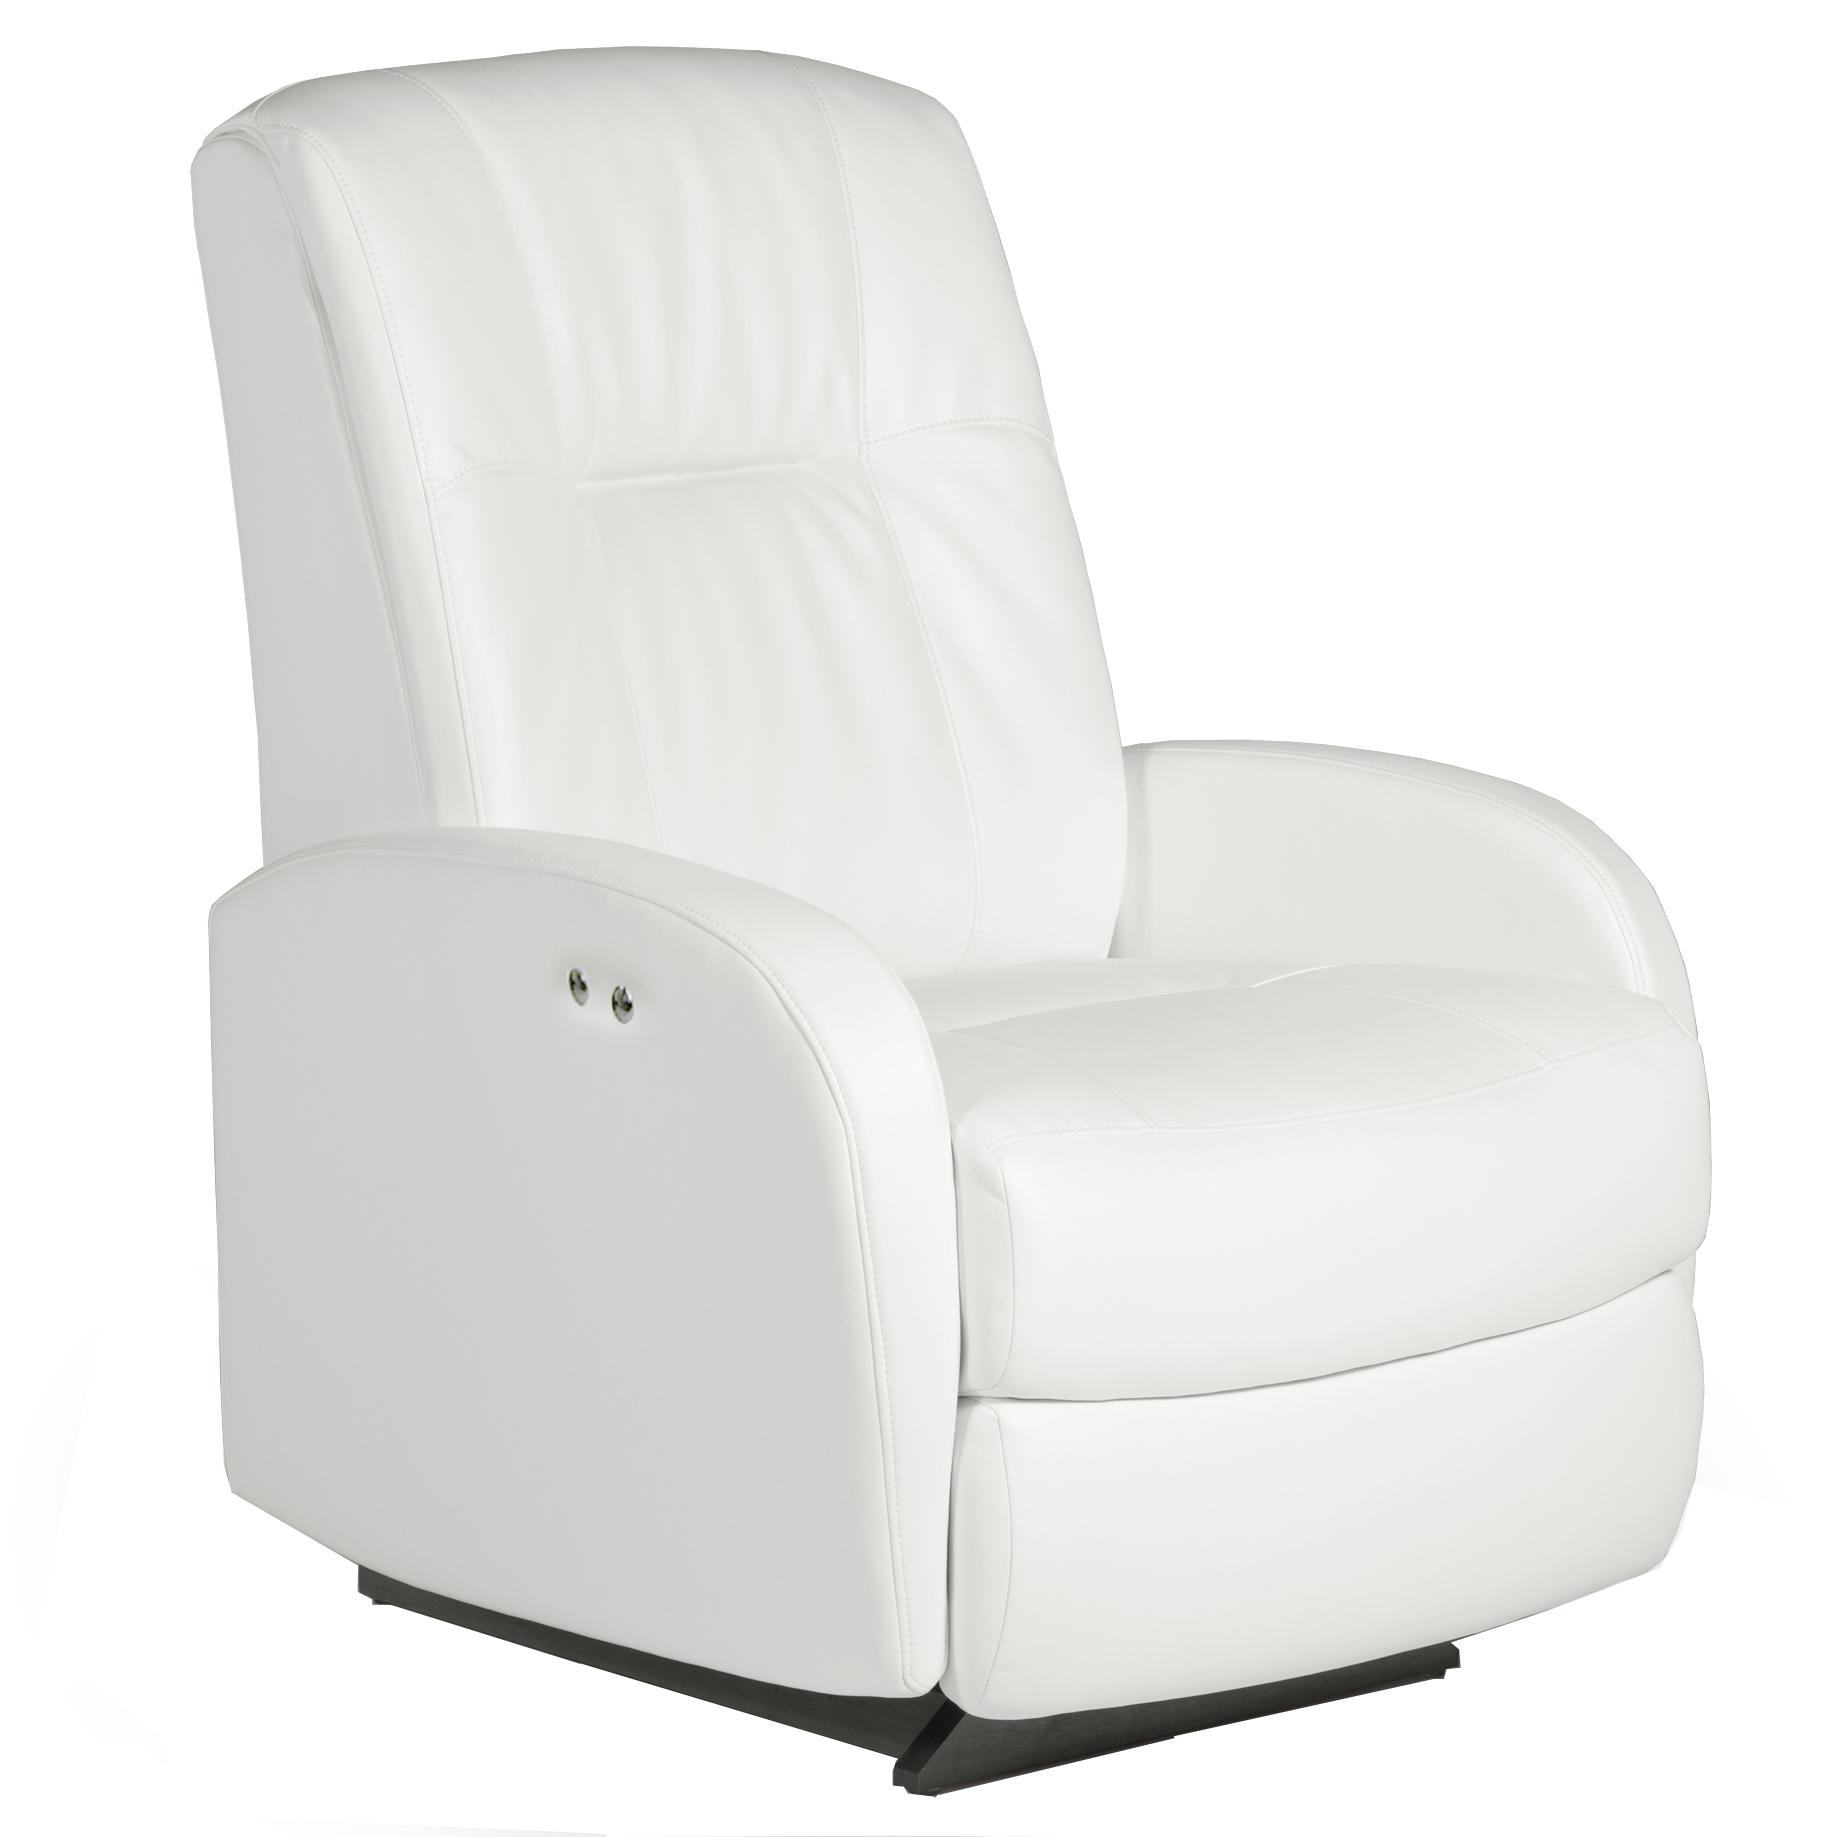 recliner width trim best b threshold lift power recliners wynette chair height home petite item furnishings products reclining